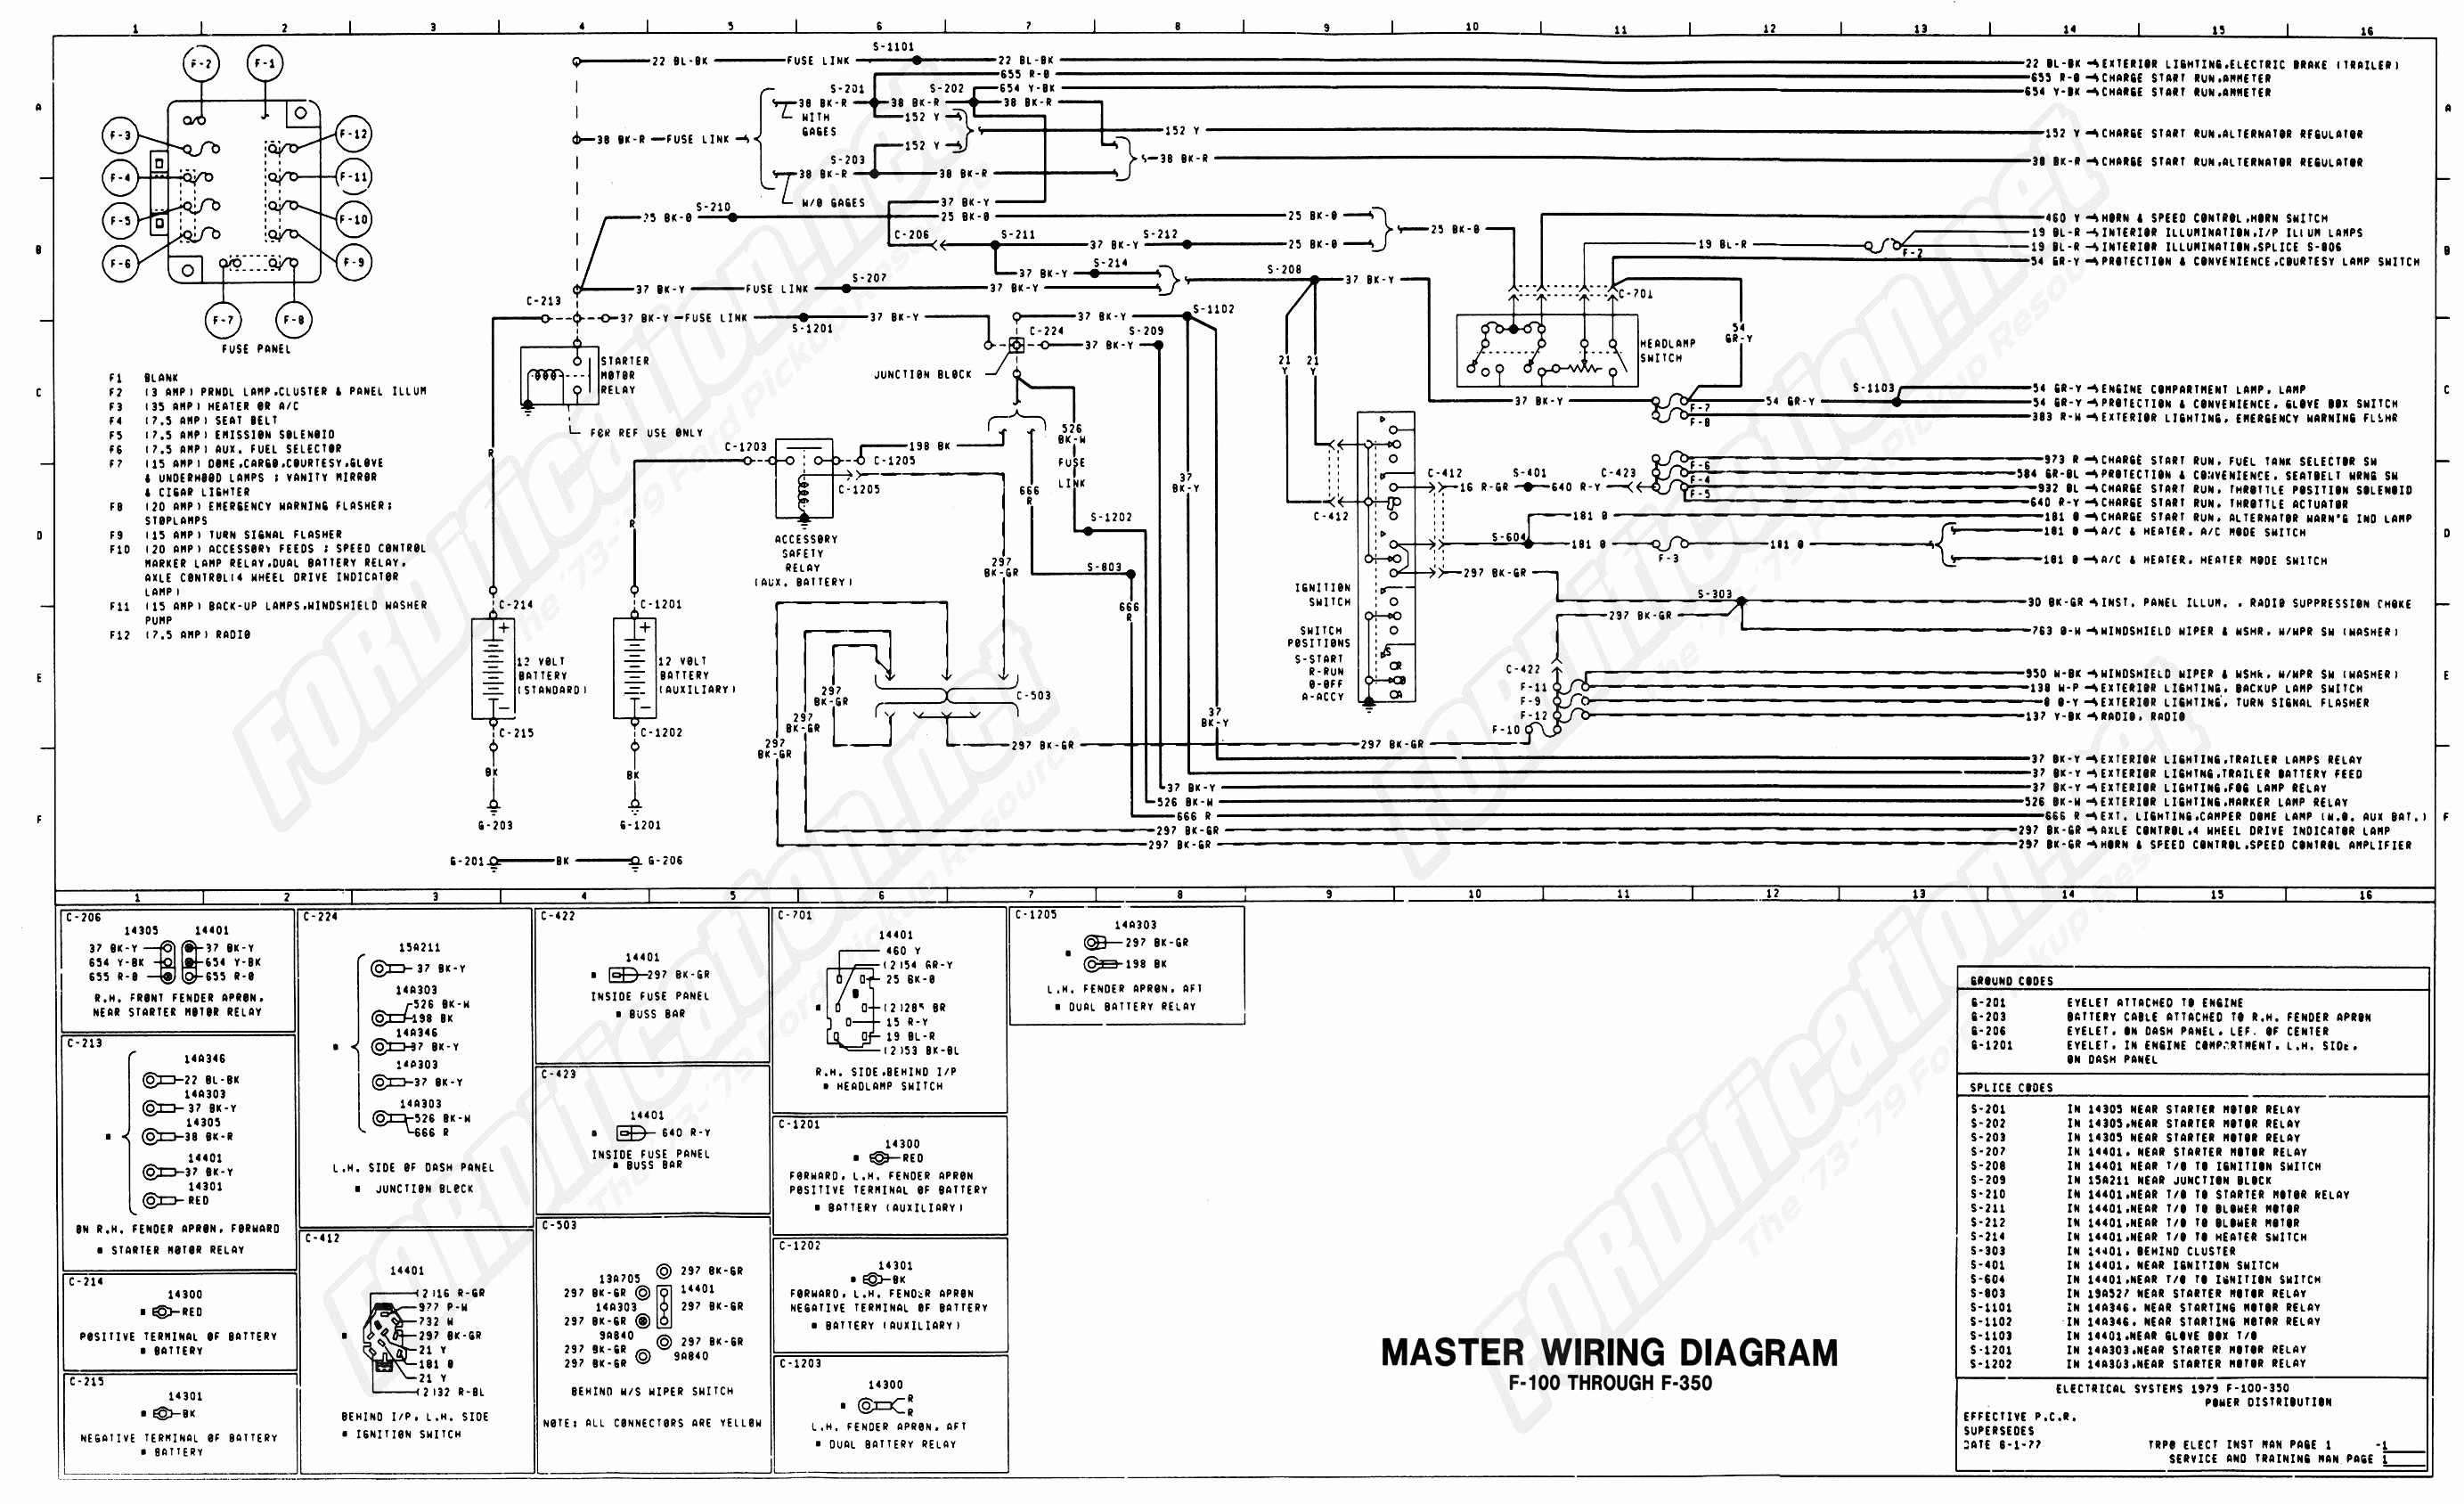 1979 ford fuse box diagram electrical wiring diagram house u2022 rh universalservices co 1979 ford ranchero fuse box Fuse Box Diagram